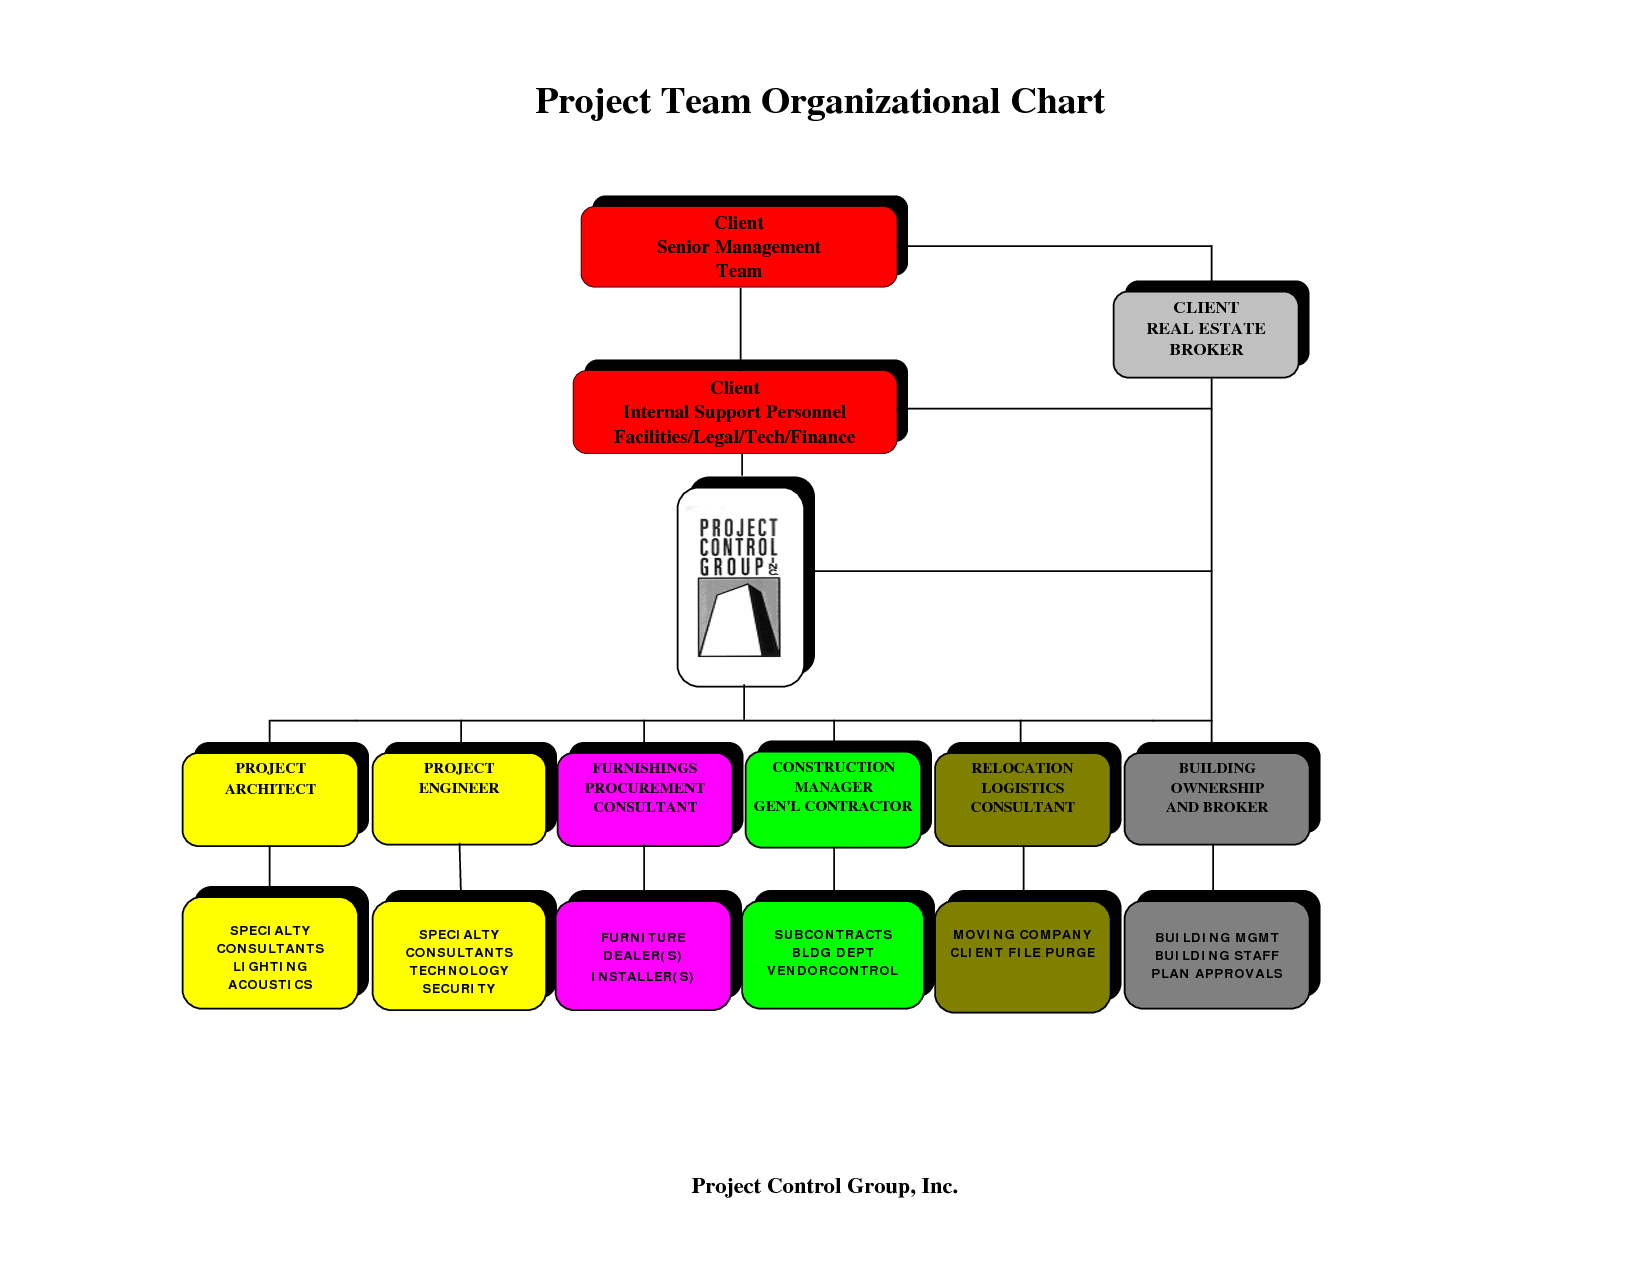 Company Flow Chart Template Free Organizational Chart Template Company Organization  Chart, Organizational Chart Templates For Any Organization, ...  Organizational Flow Chart Template Word